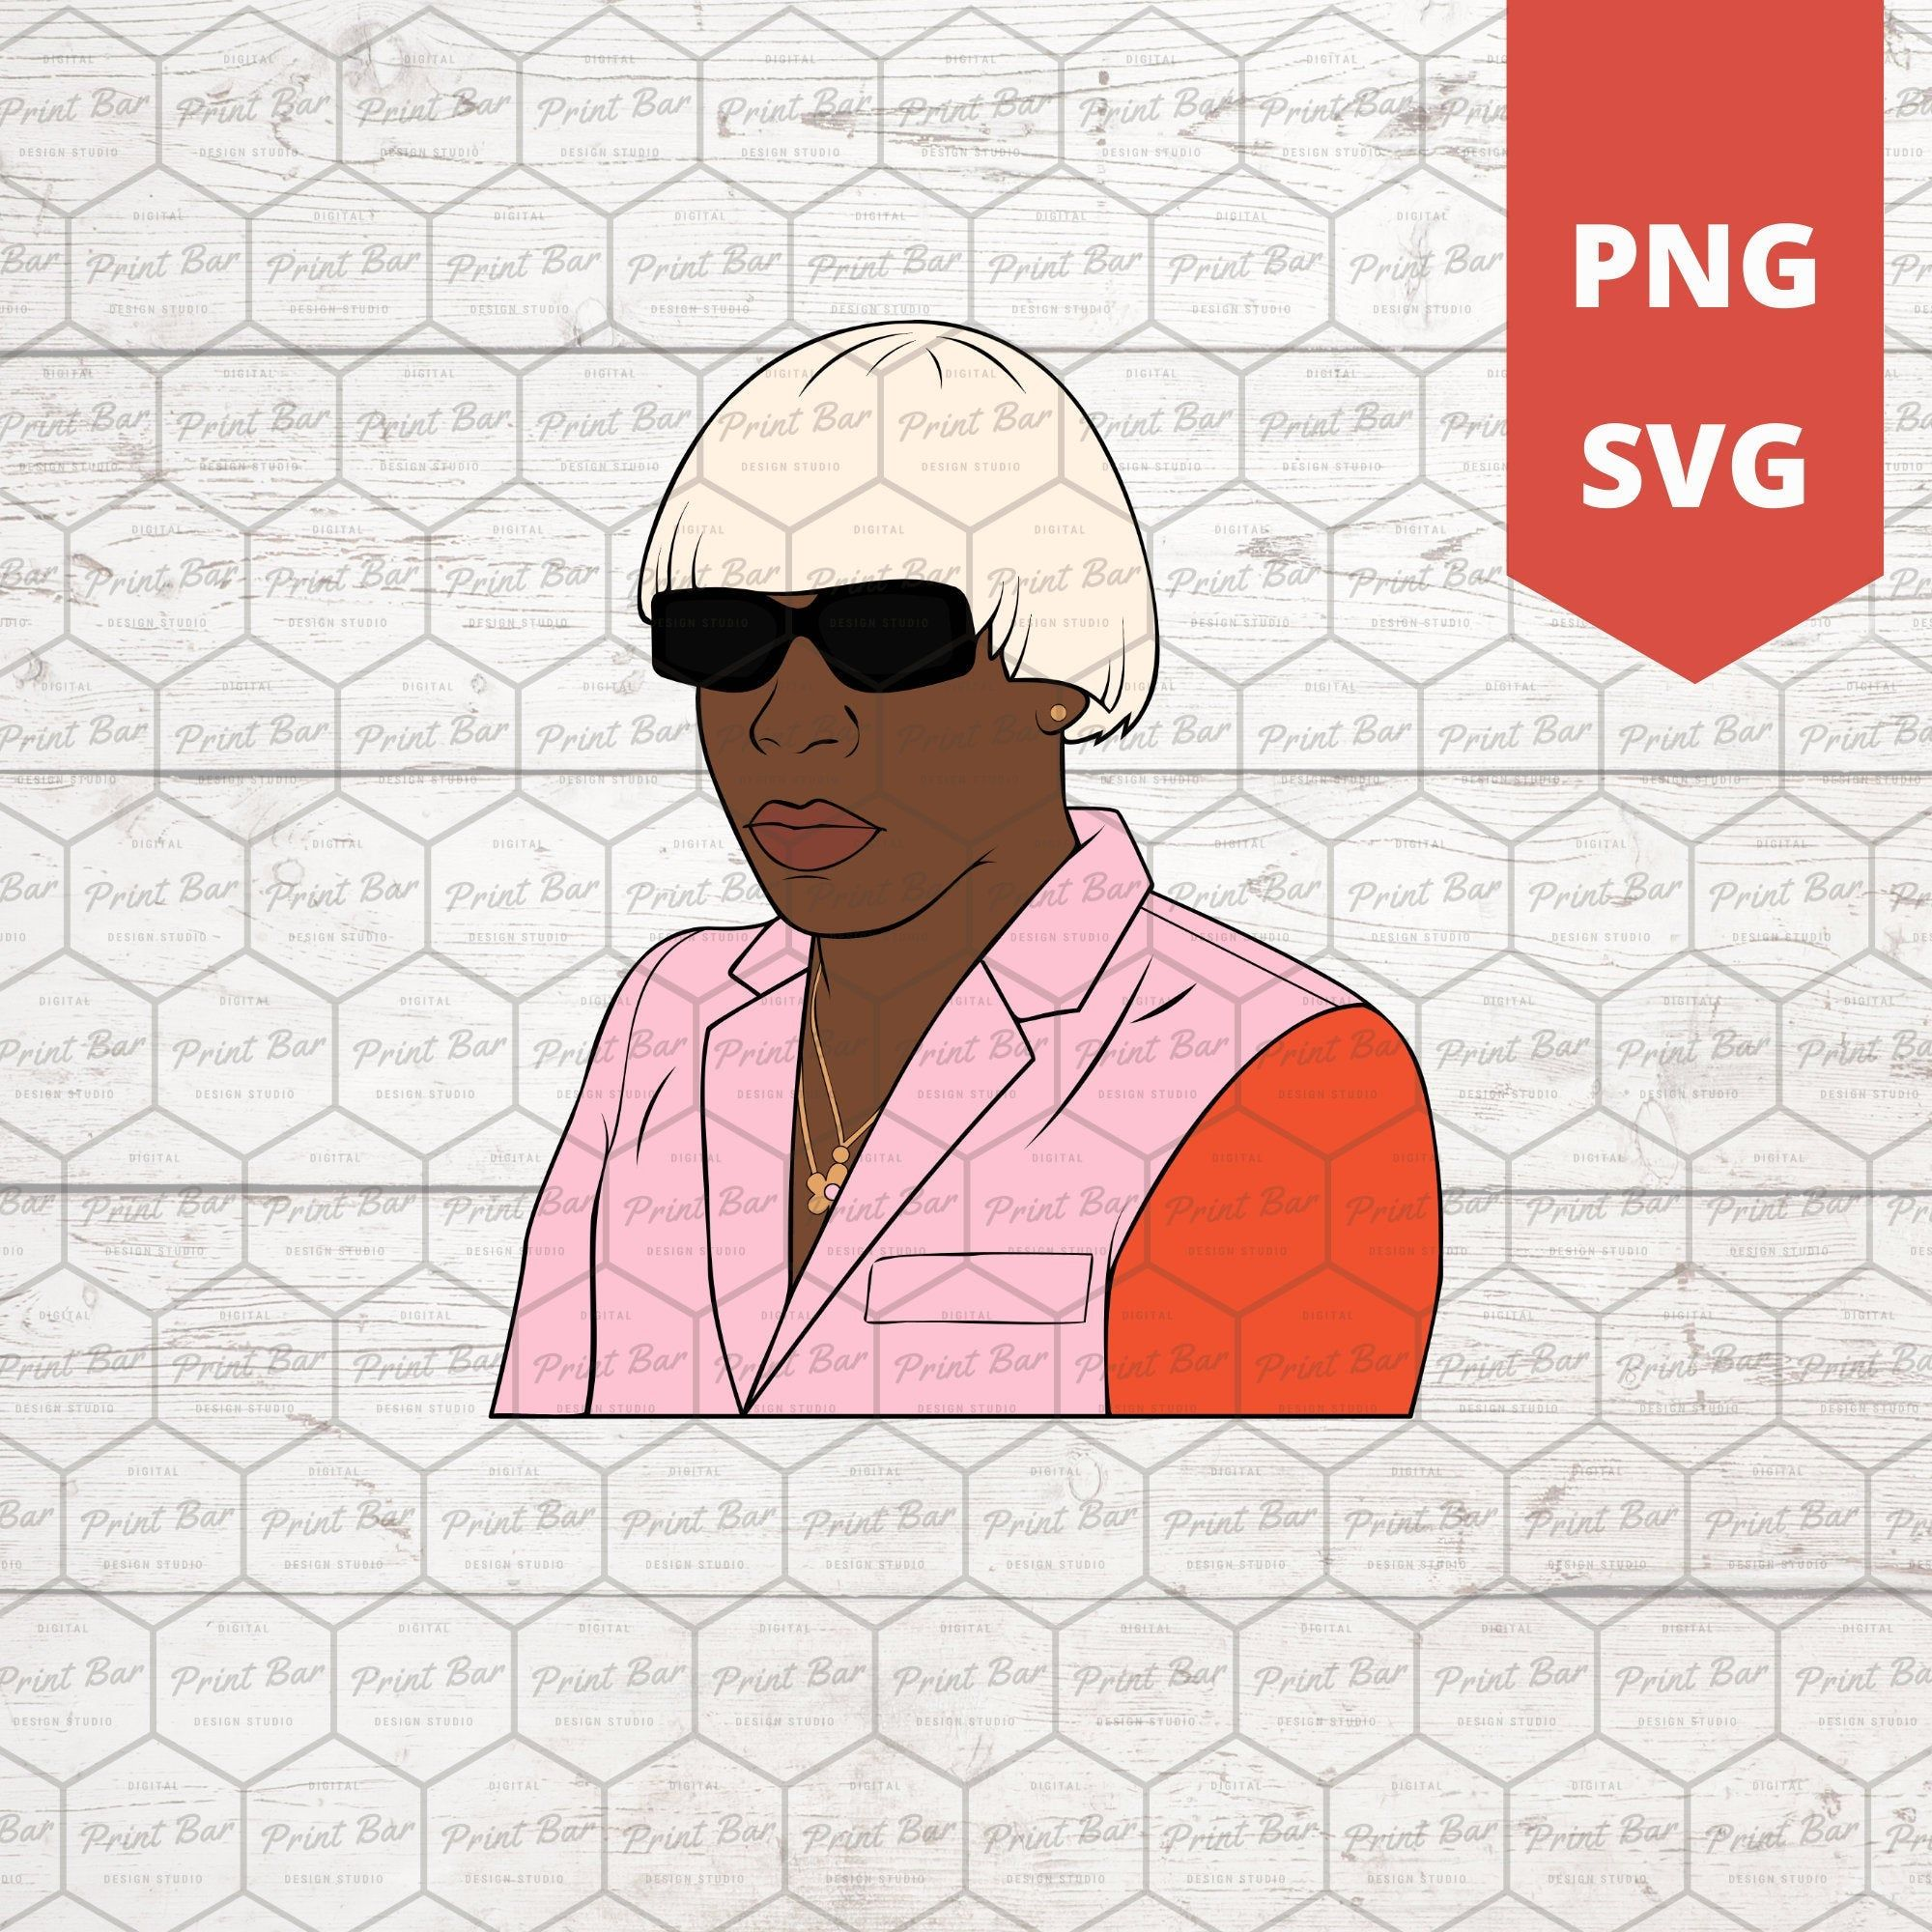 Tyler The Creator Svg Png Https Etsy Me 2cu3rpp Skrapbuking Tylerthecreator Tylersvg Thecreatorsvg Igor Svg Silh Tyler The Creator The Creator Tyler